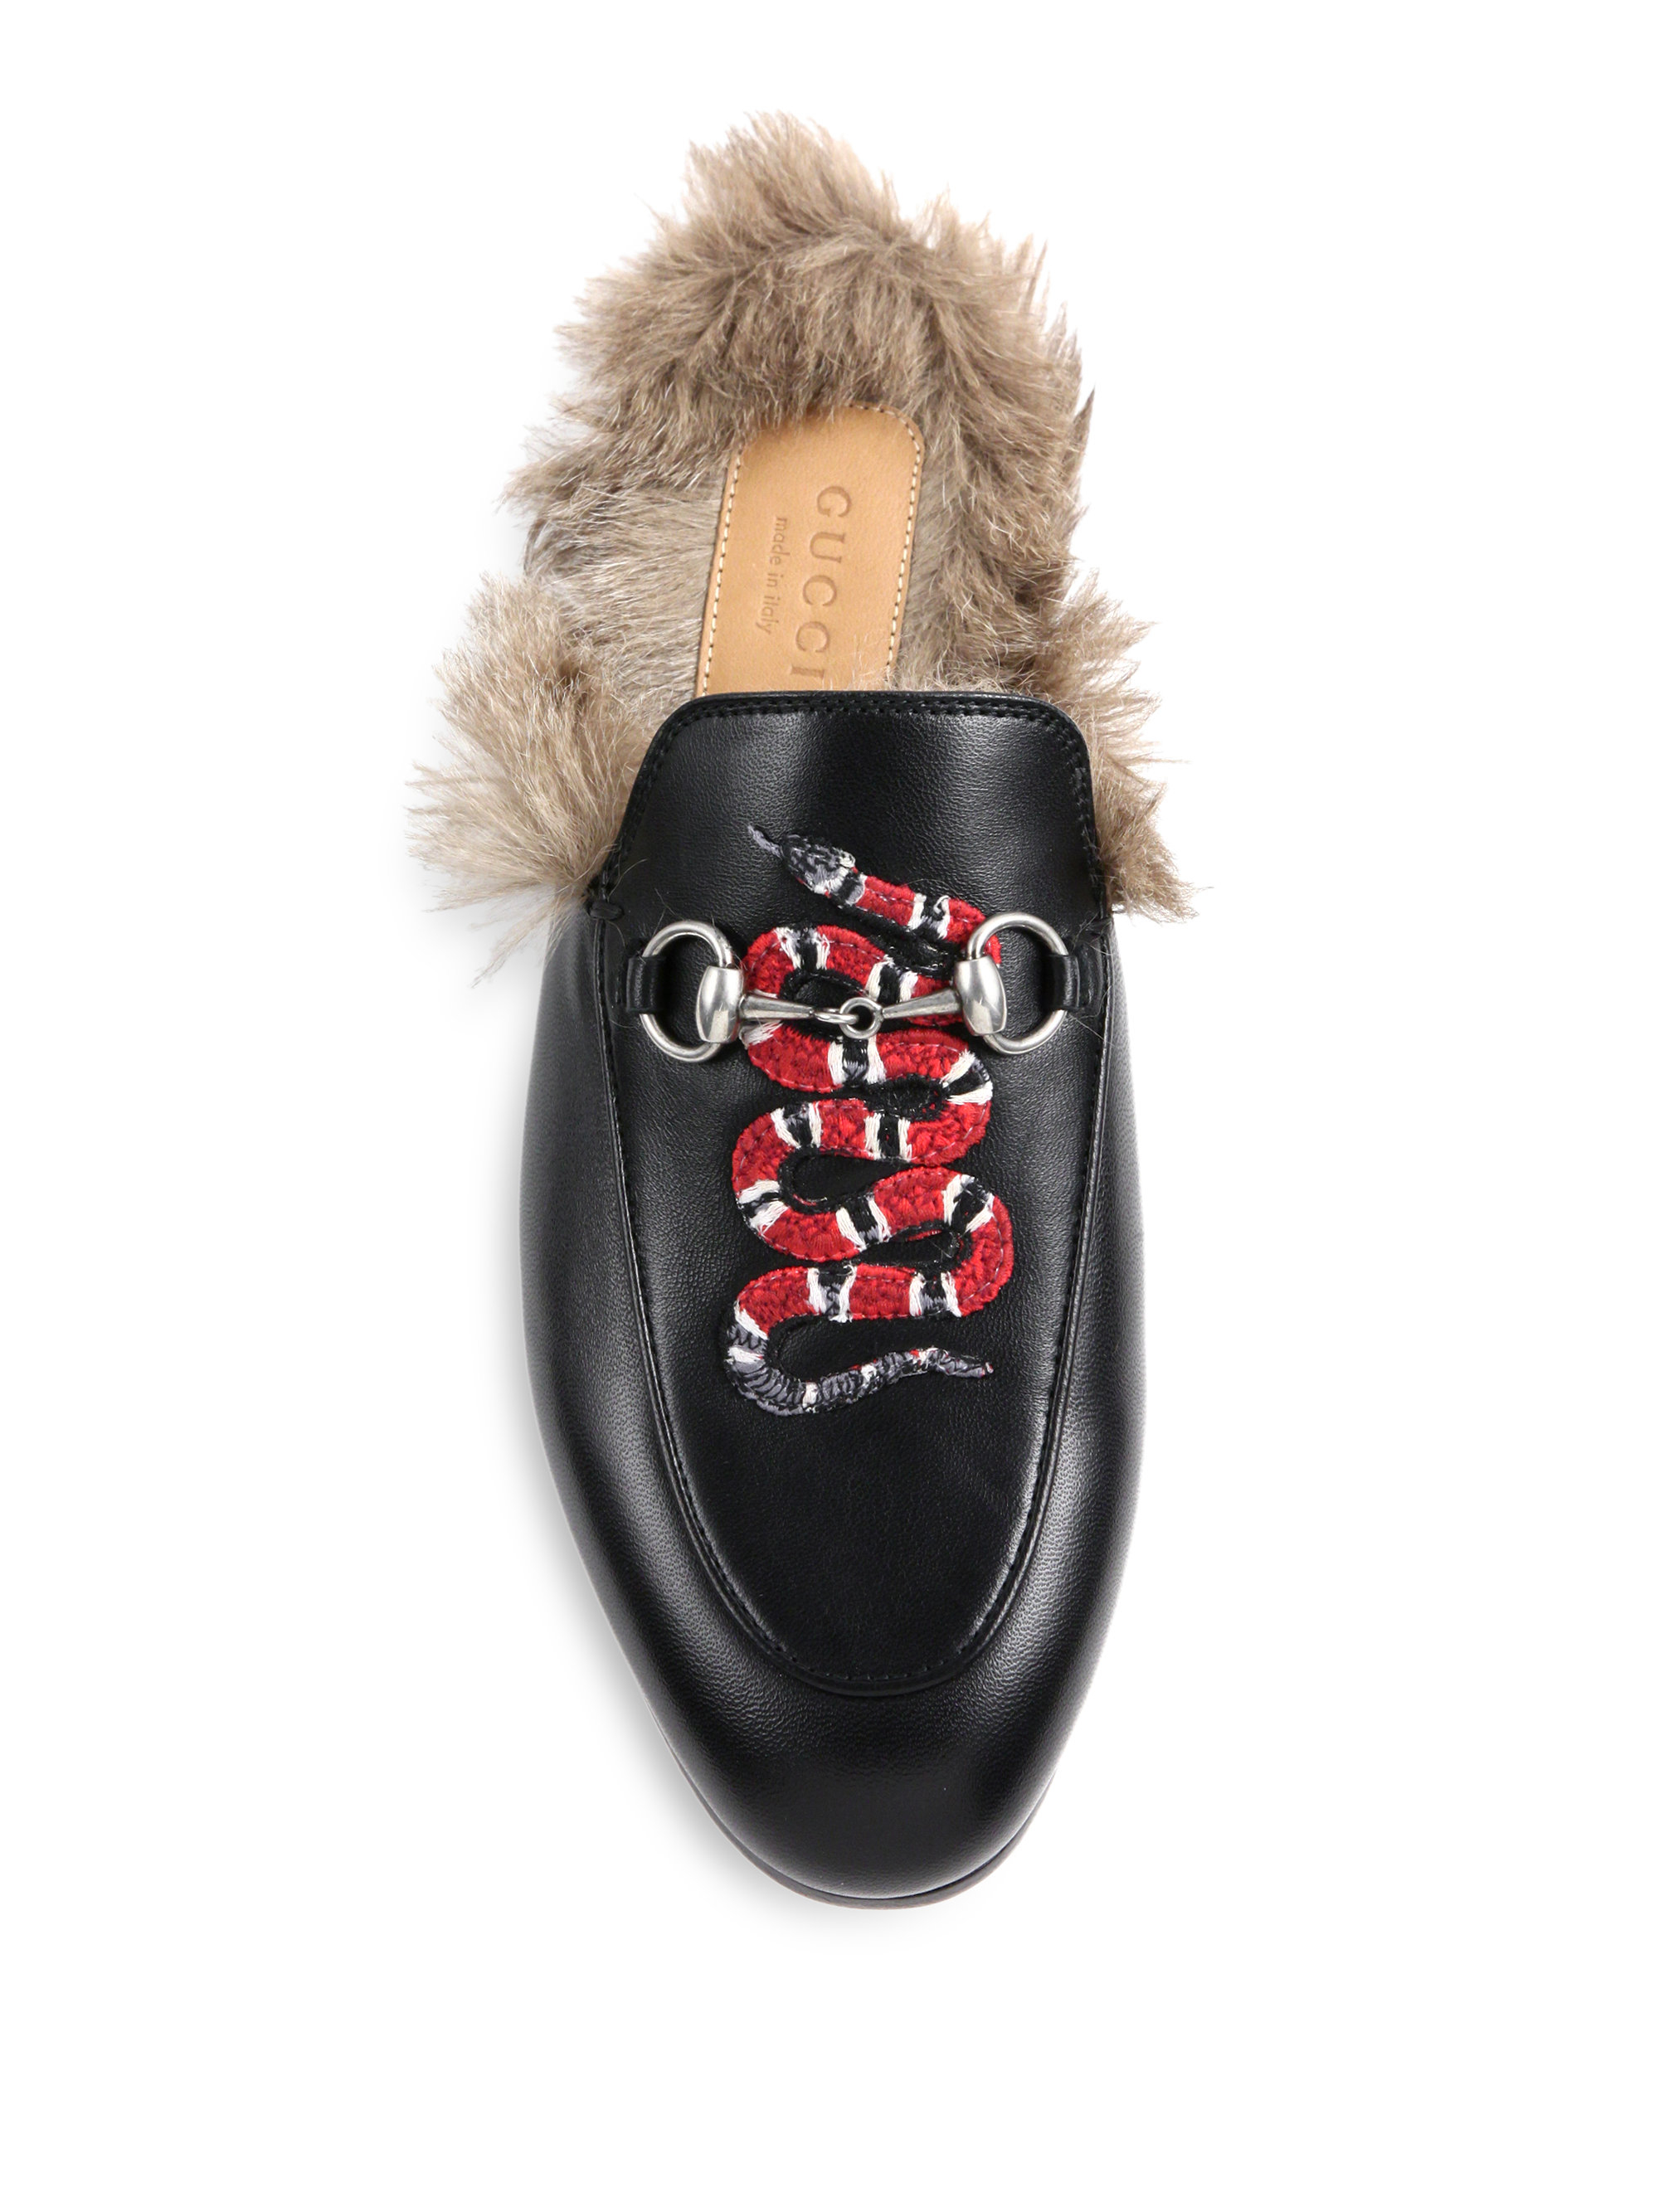 Gucci Princetown Fur Lined Snake Leather Slippers In Black